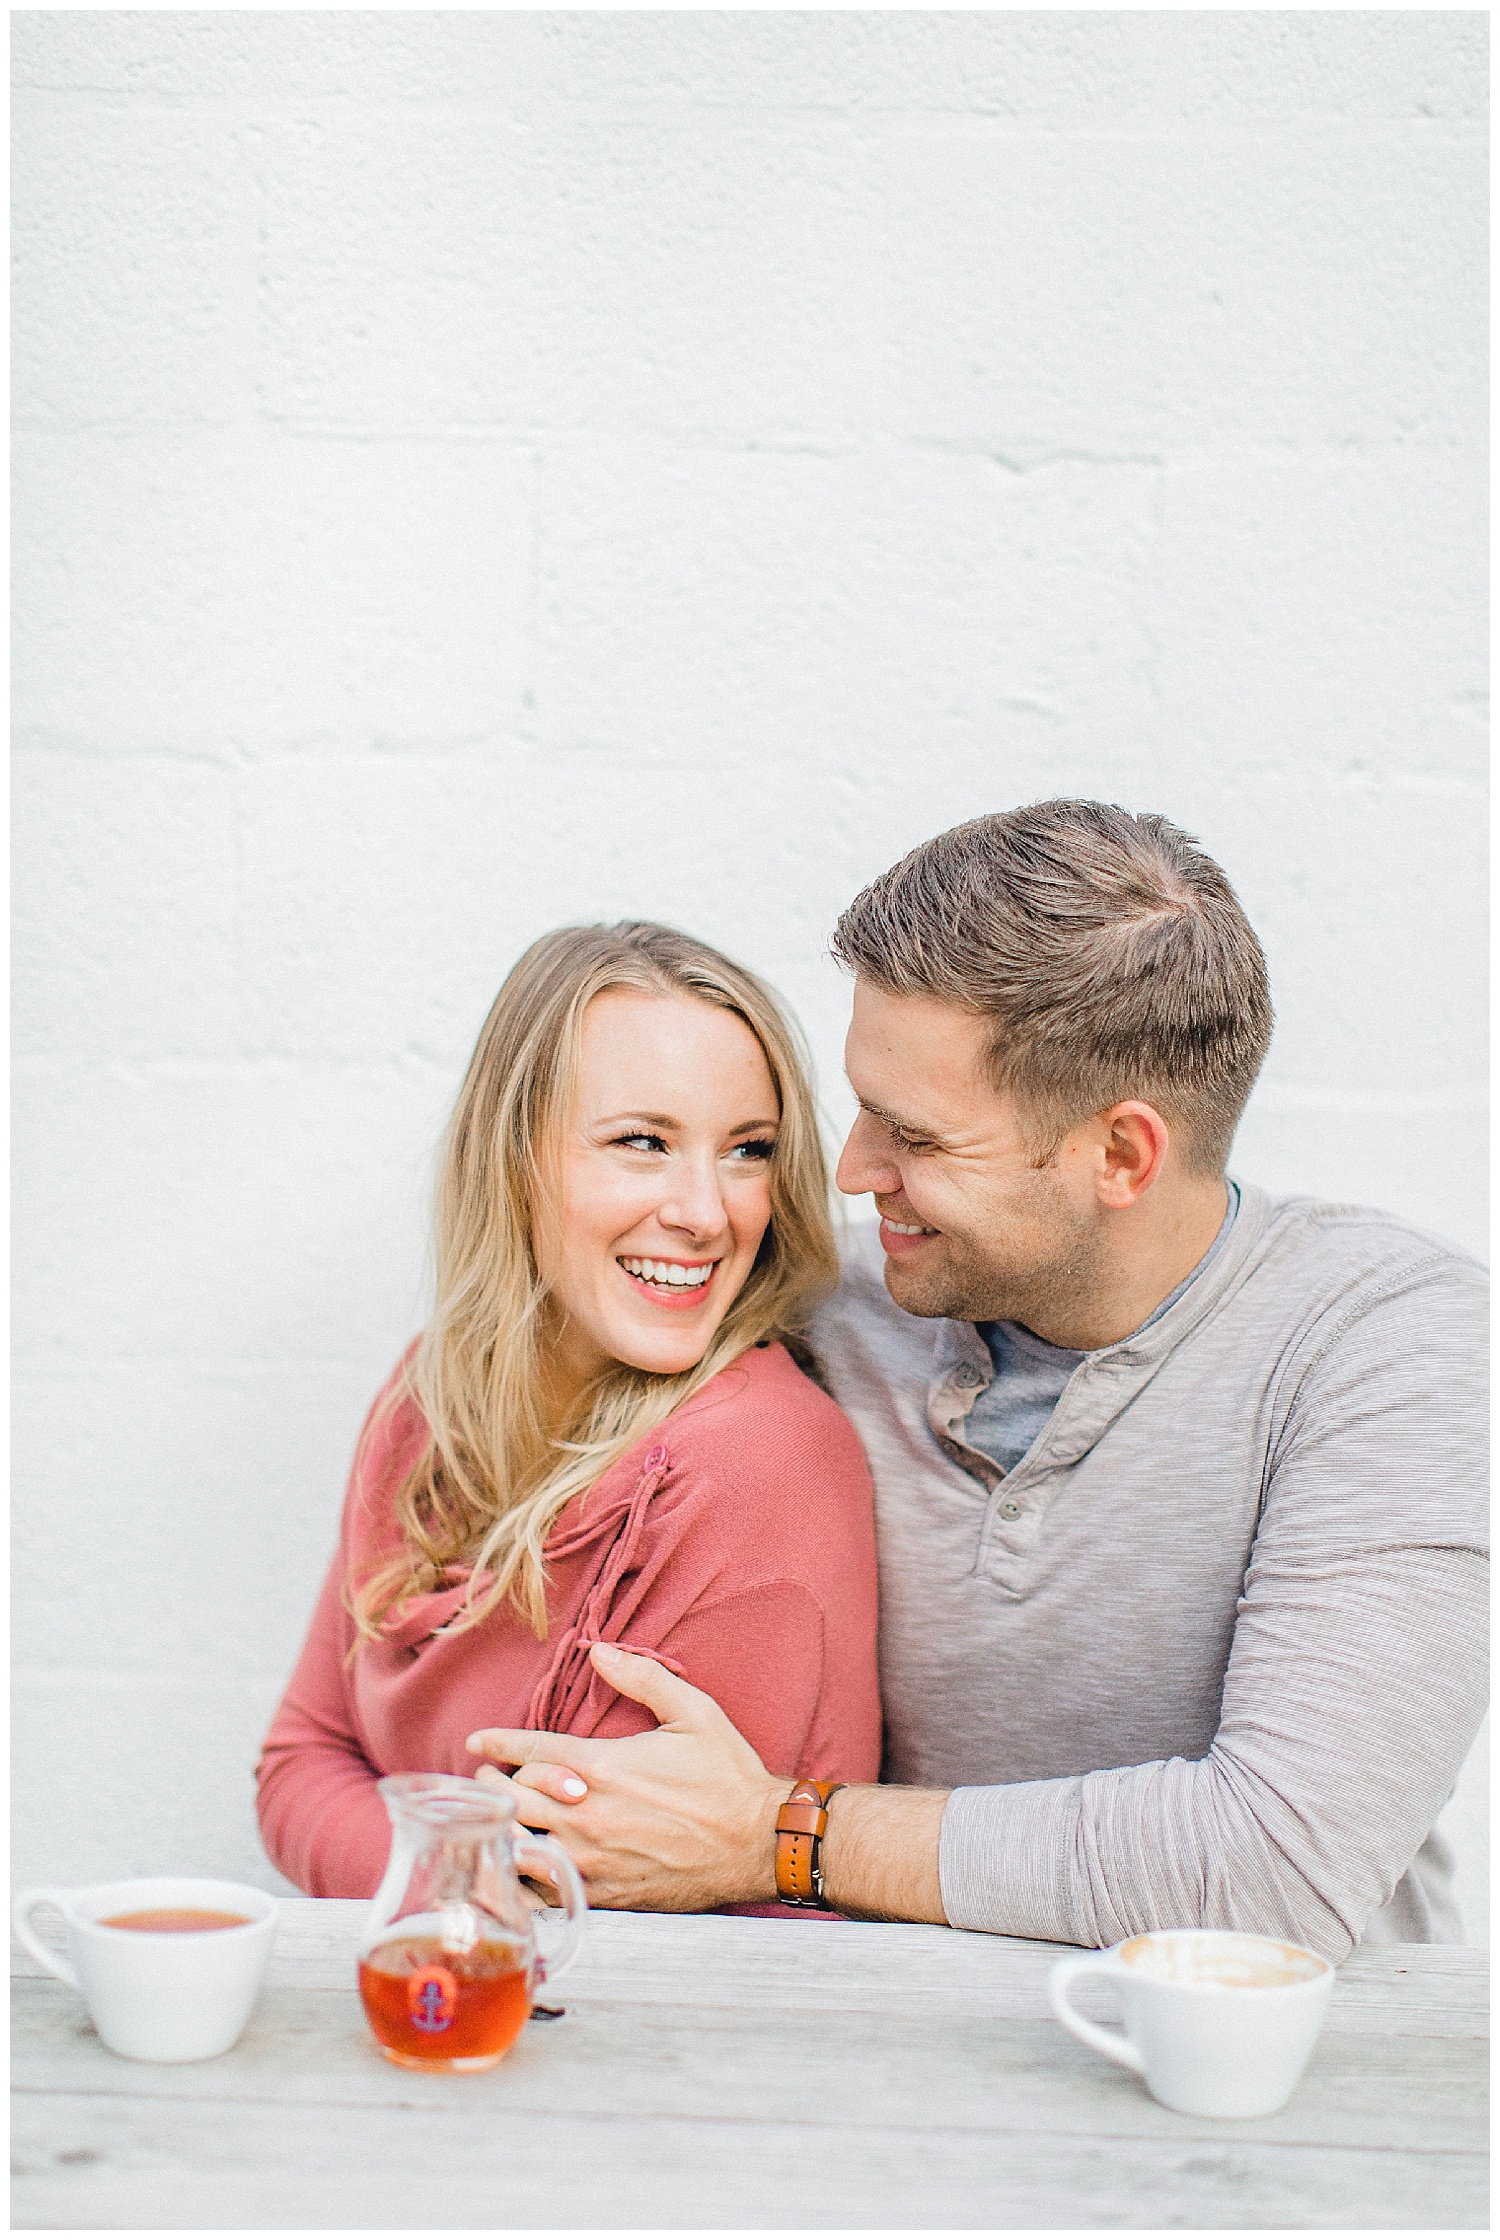 ERC_0990_Downtown Nashville Engagement Session at Barista Parlor   Emma Rose Company Wedding Photographer   Outfit Inspiration for Engagement Session   Kindred Light and Airy Photographer.jpg